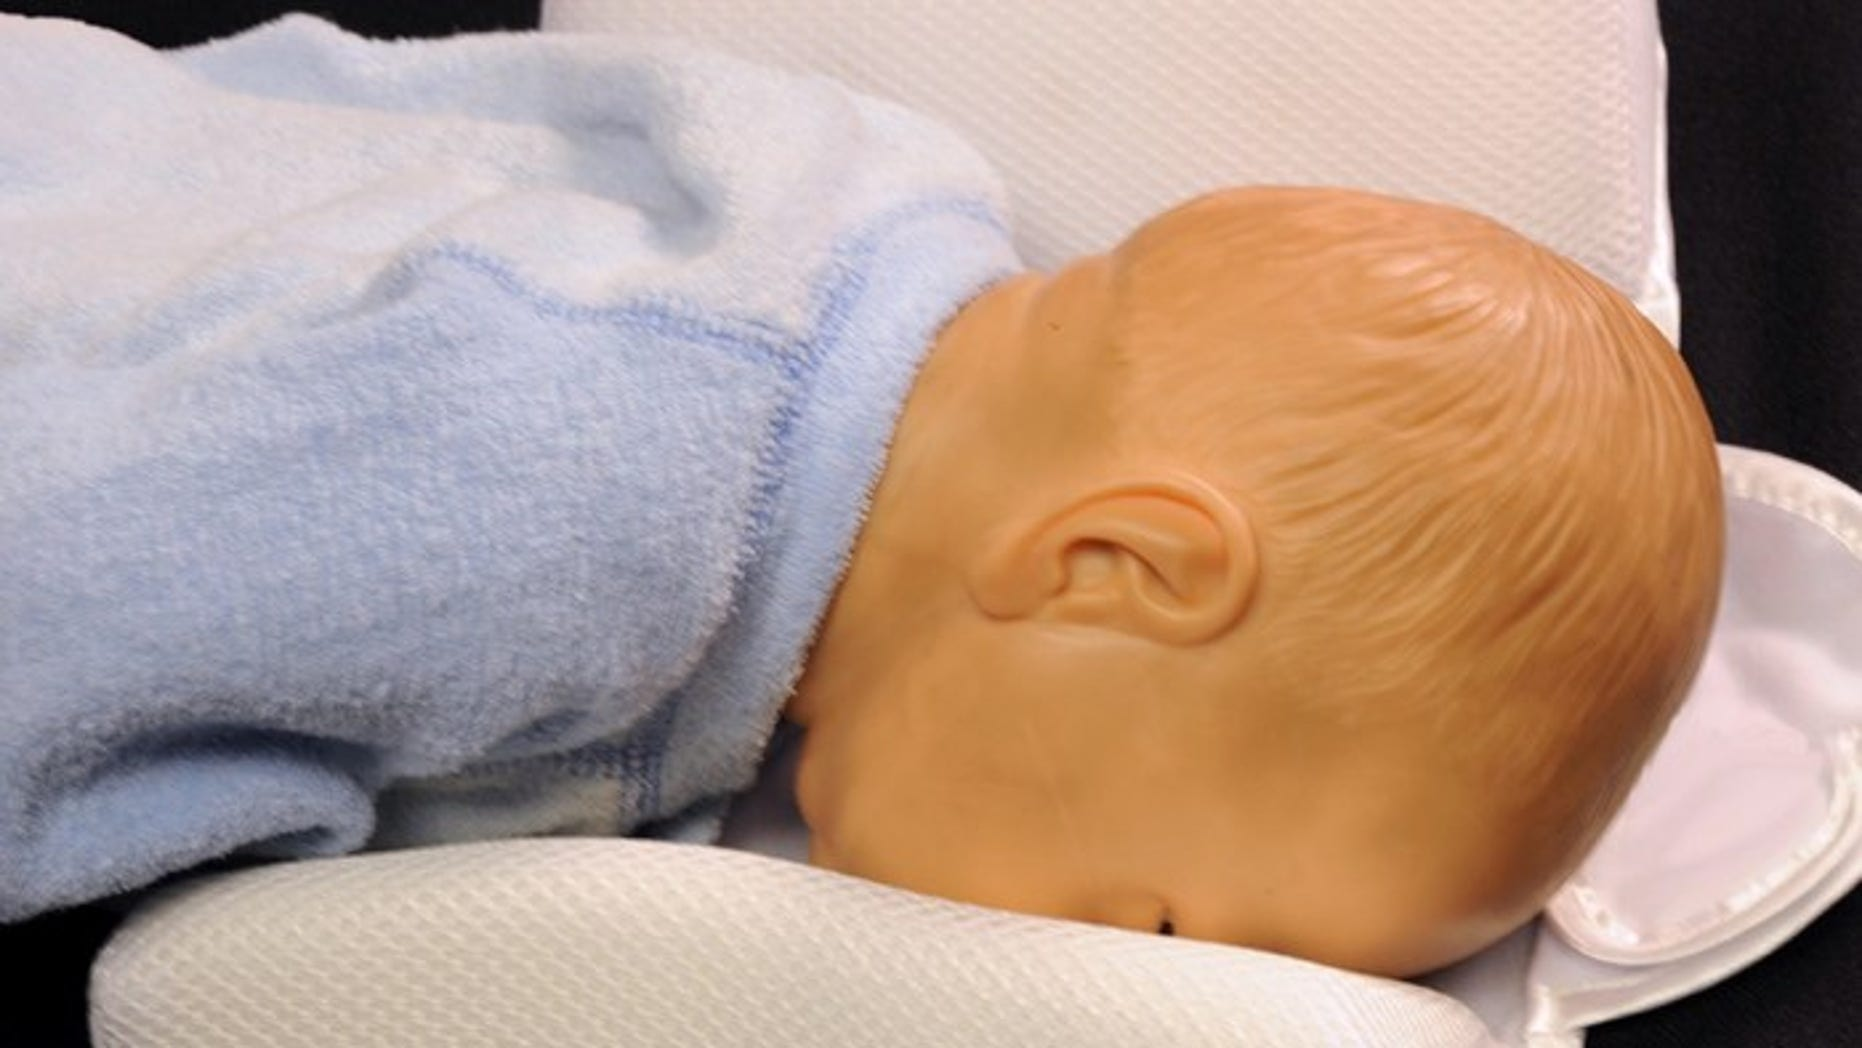 The orthopedic pillow intended for newborns